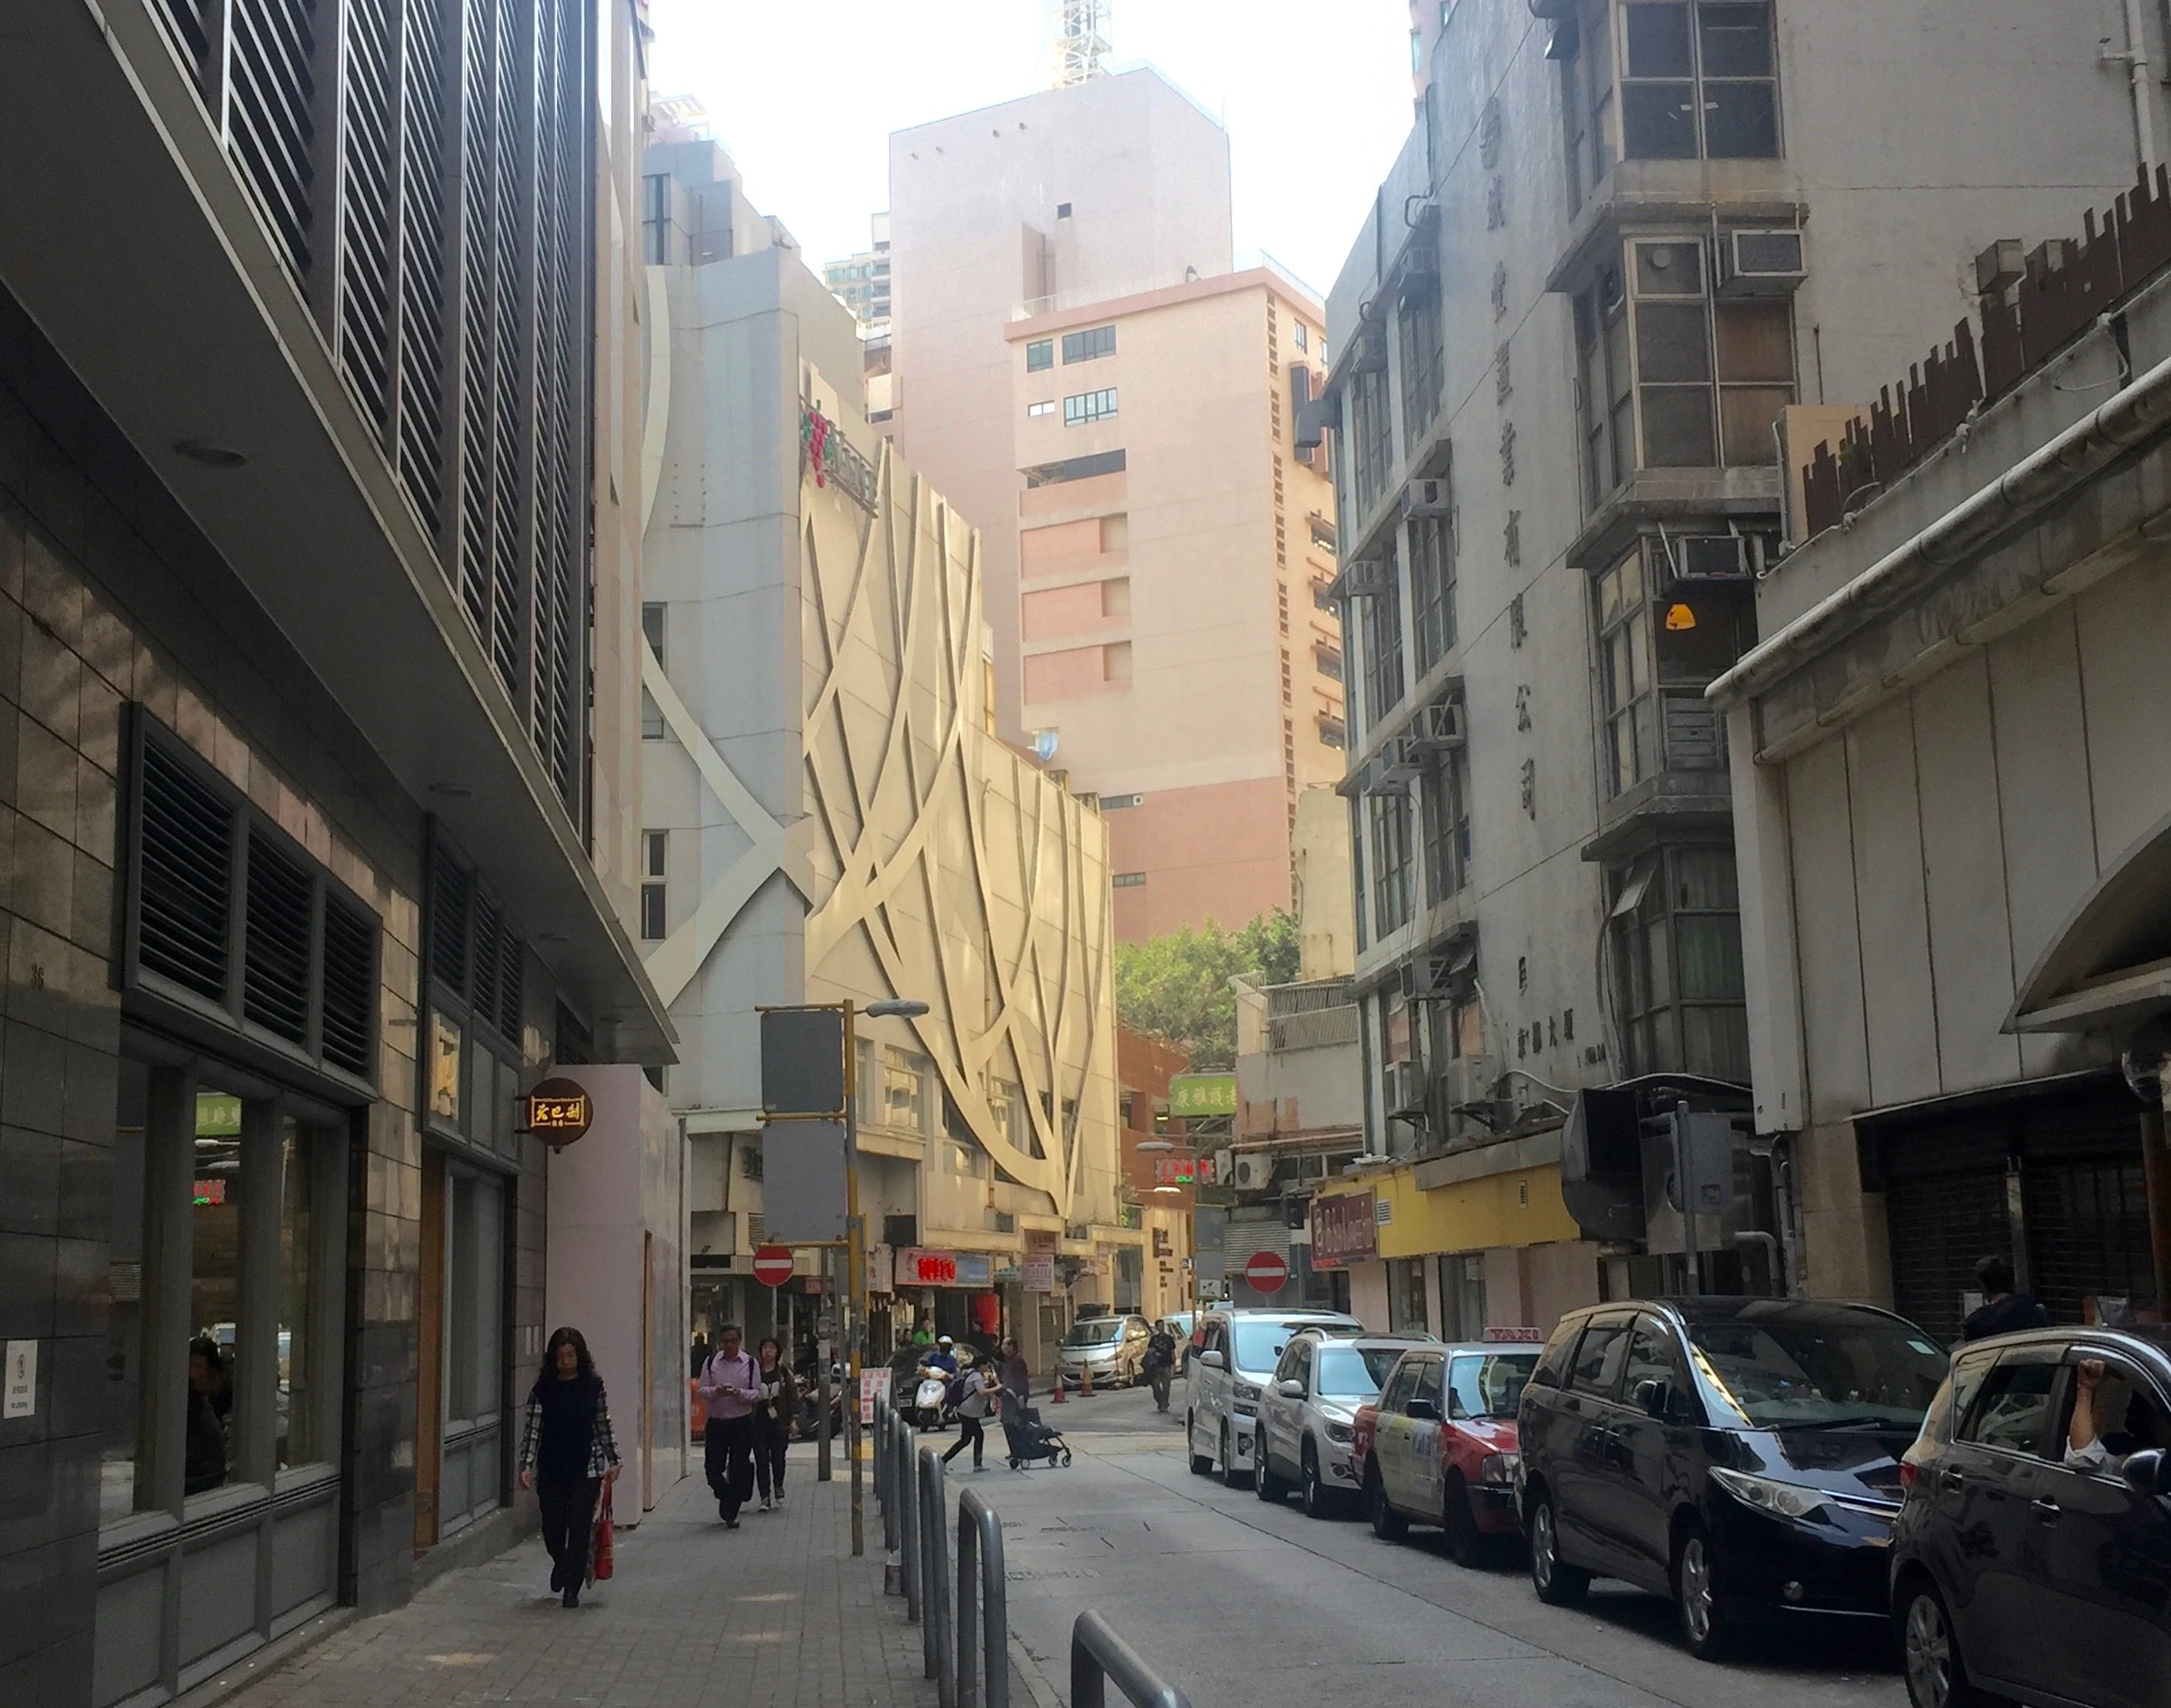 Wood Road Wan Chai-foodie street of local and Asian authentic restaurants